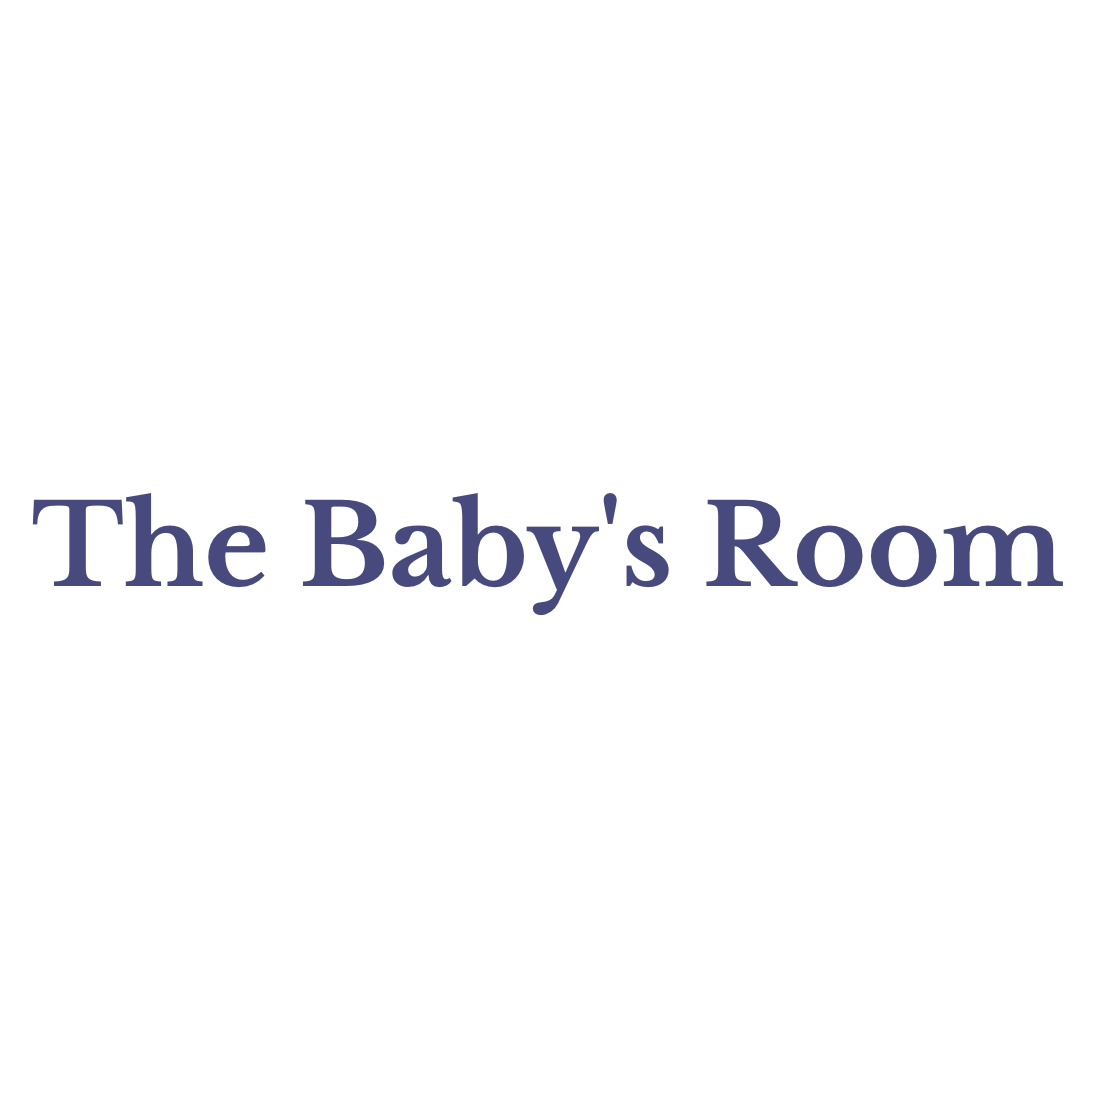 The Babies' Room